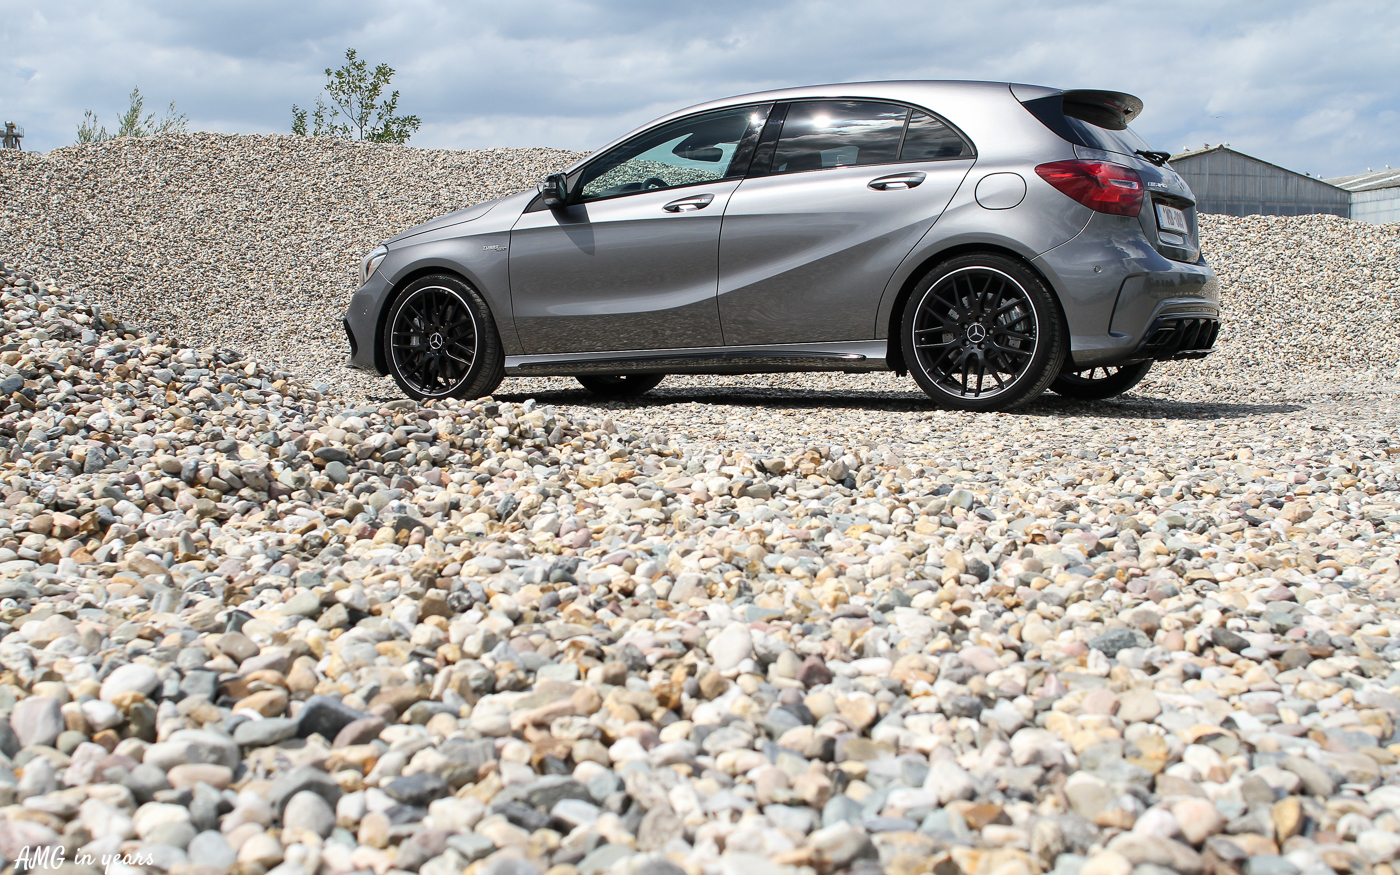 Test Drive - Mercedes-Benz A 45 AMG 4MATIC W176 - AMG In Years